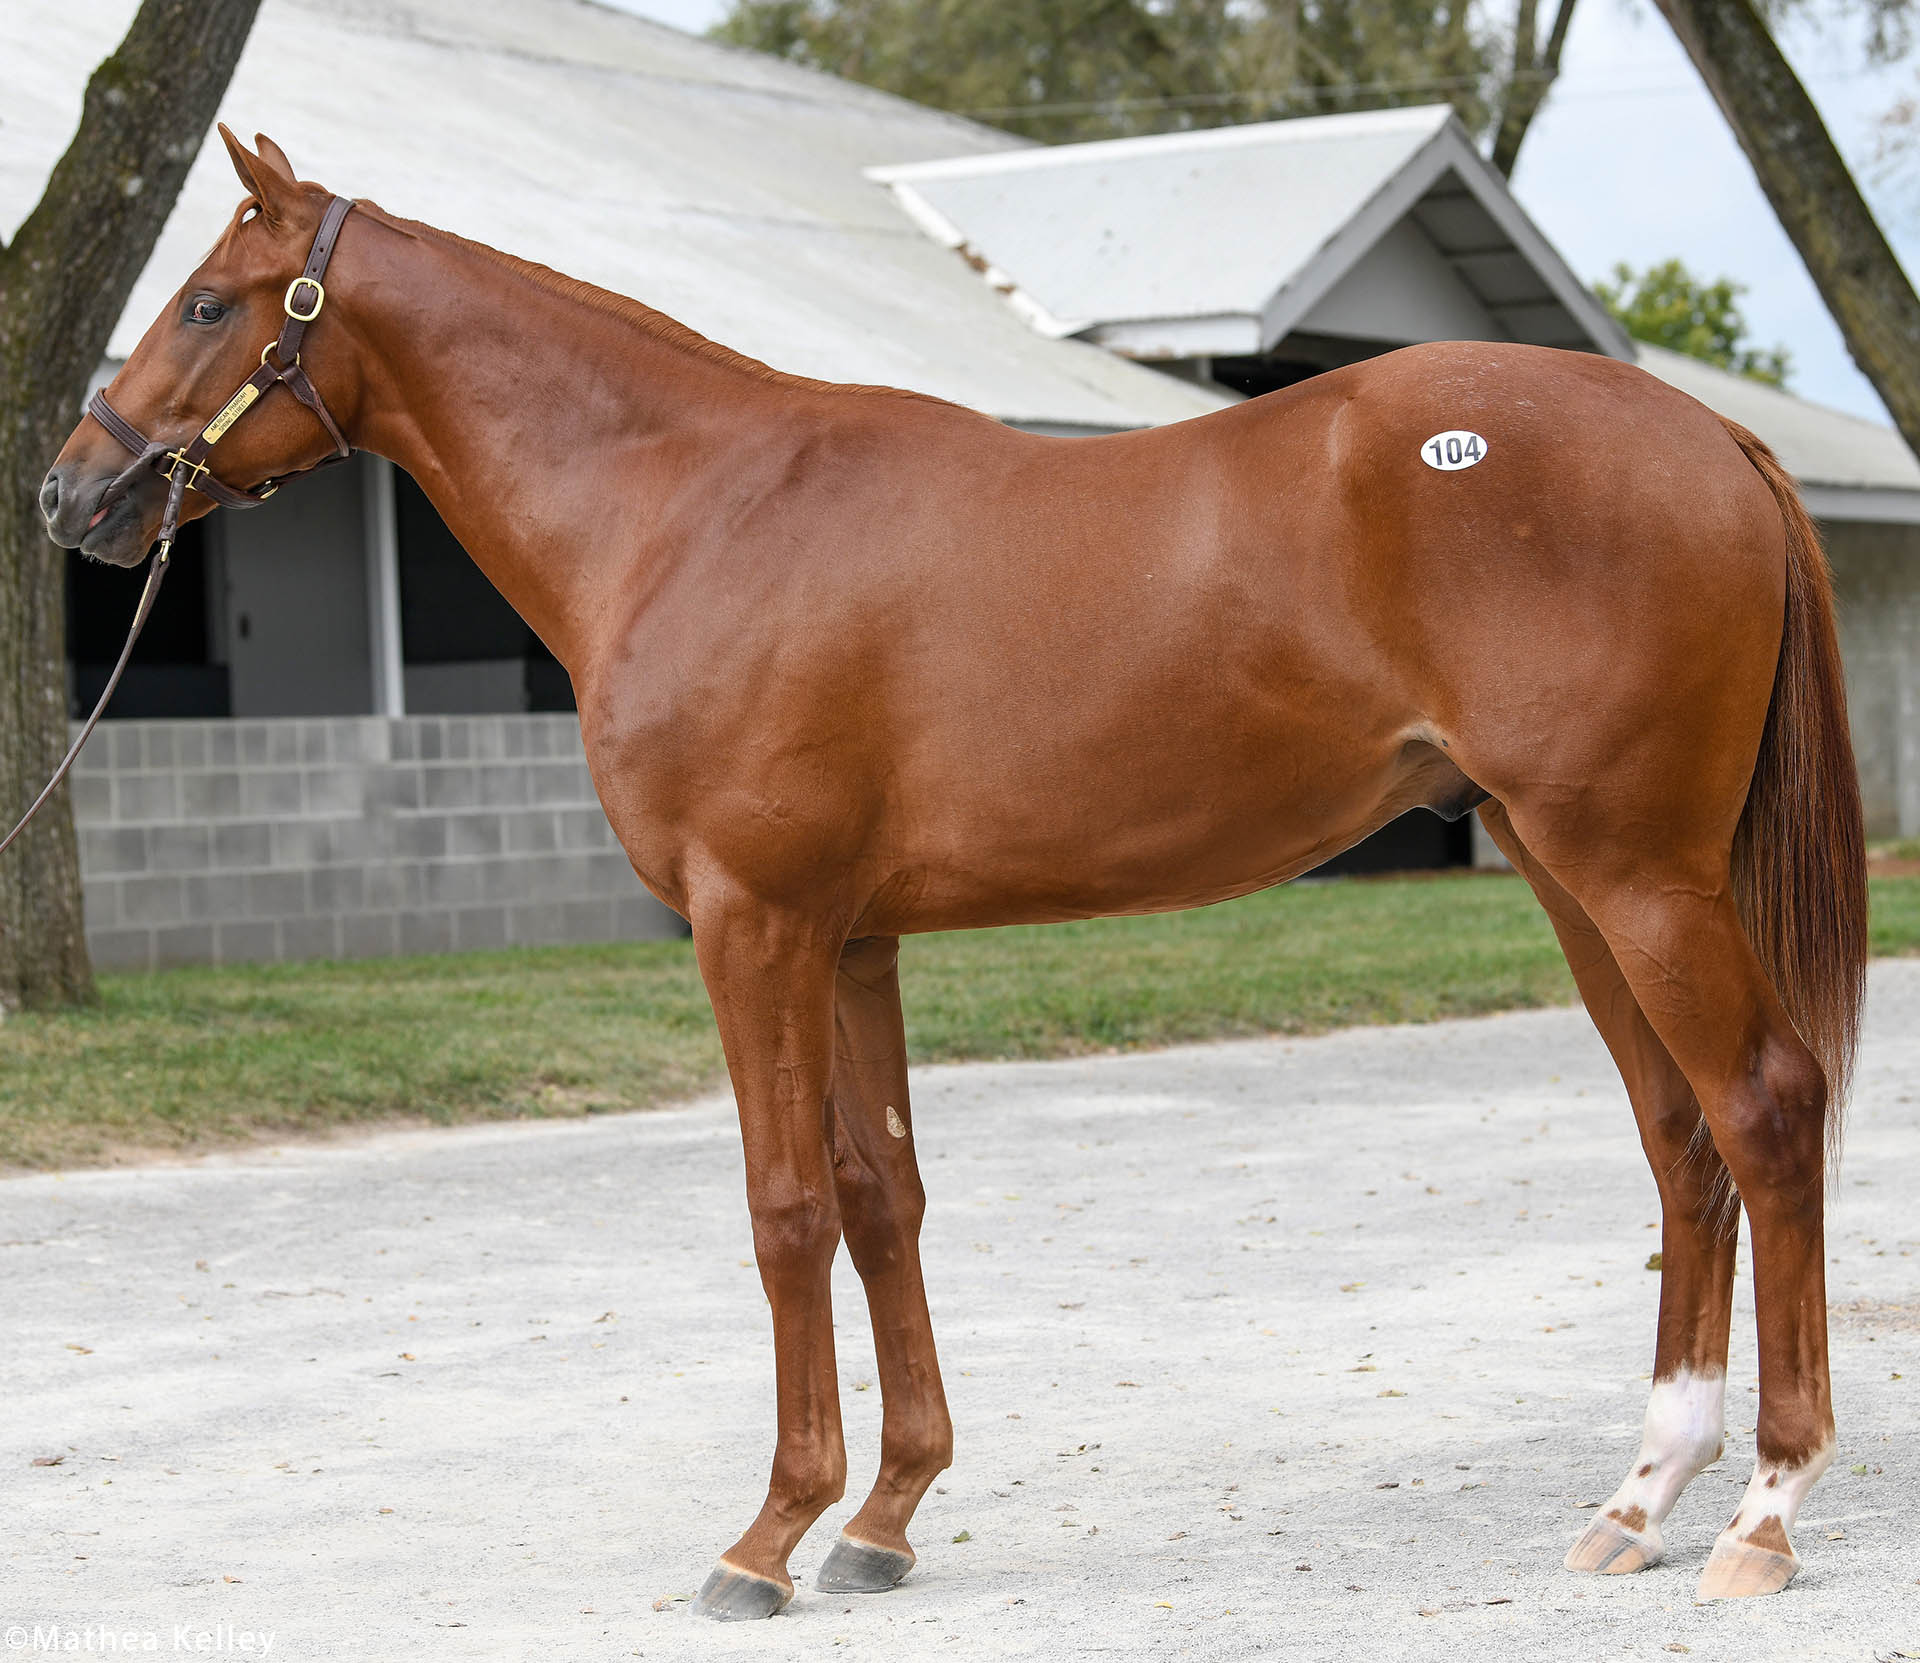 American Pharoah colt out of the Street Cry mare Spring Street, purchased at Keeneland September and available for a thoroughbred racing partnership.